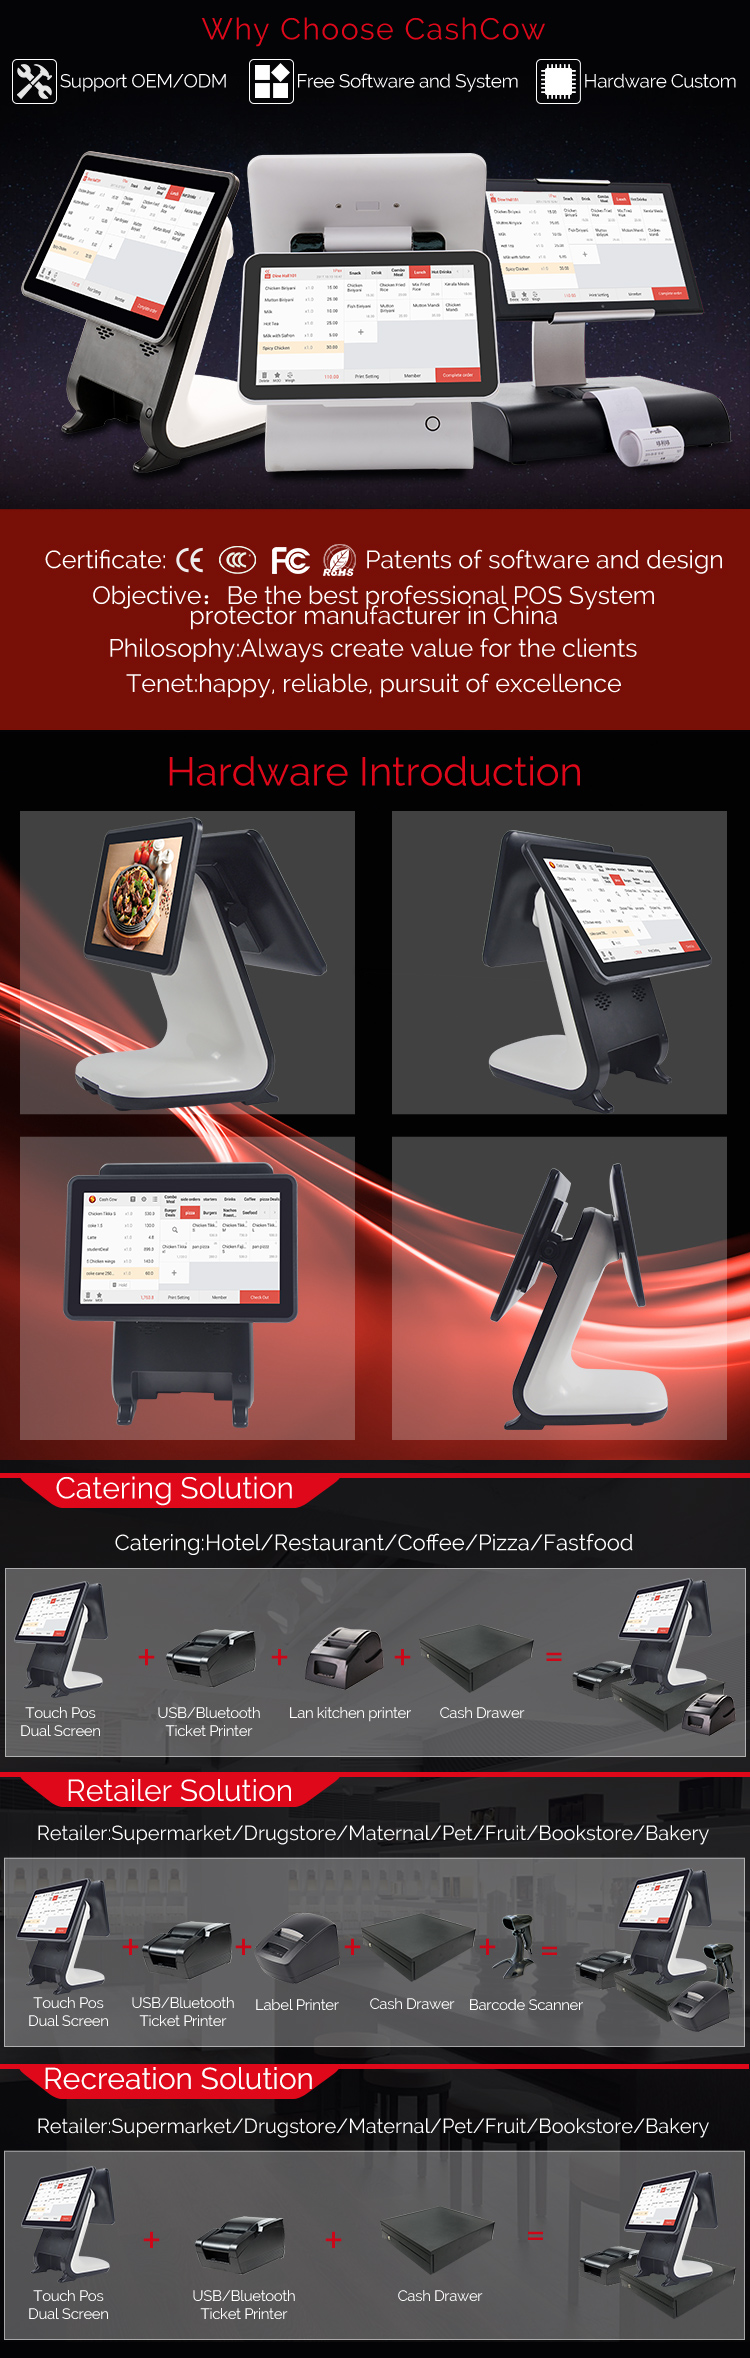 Cashcow android dual screen pos with built in printer